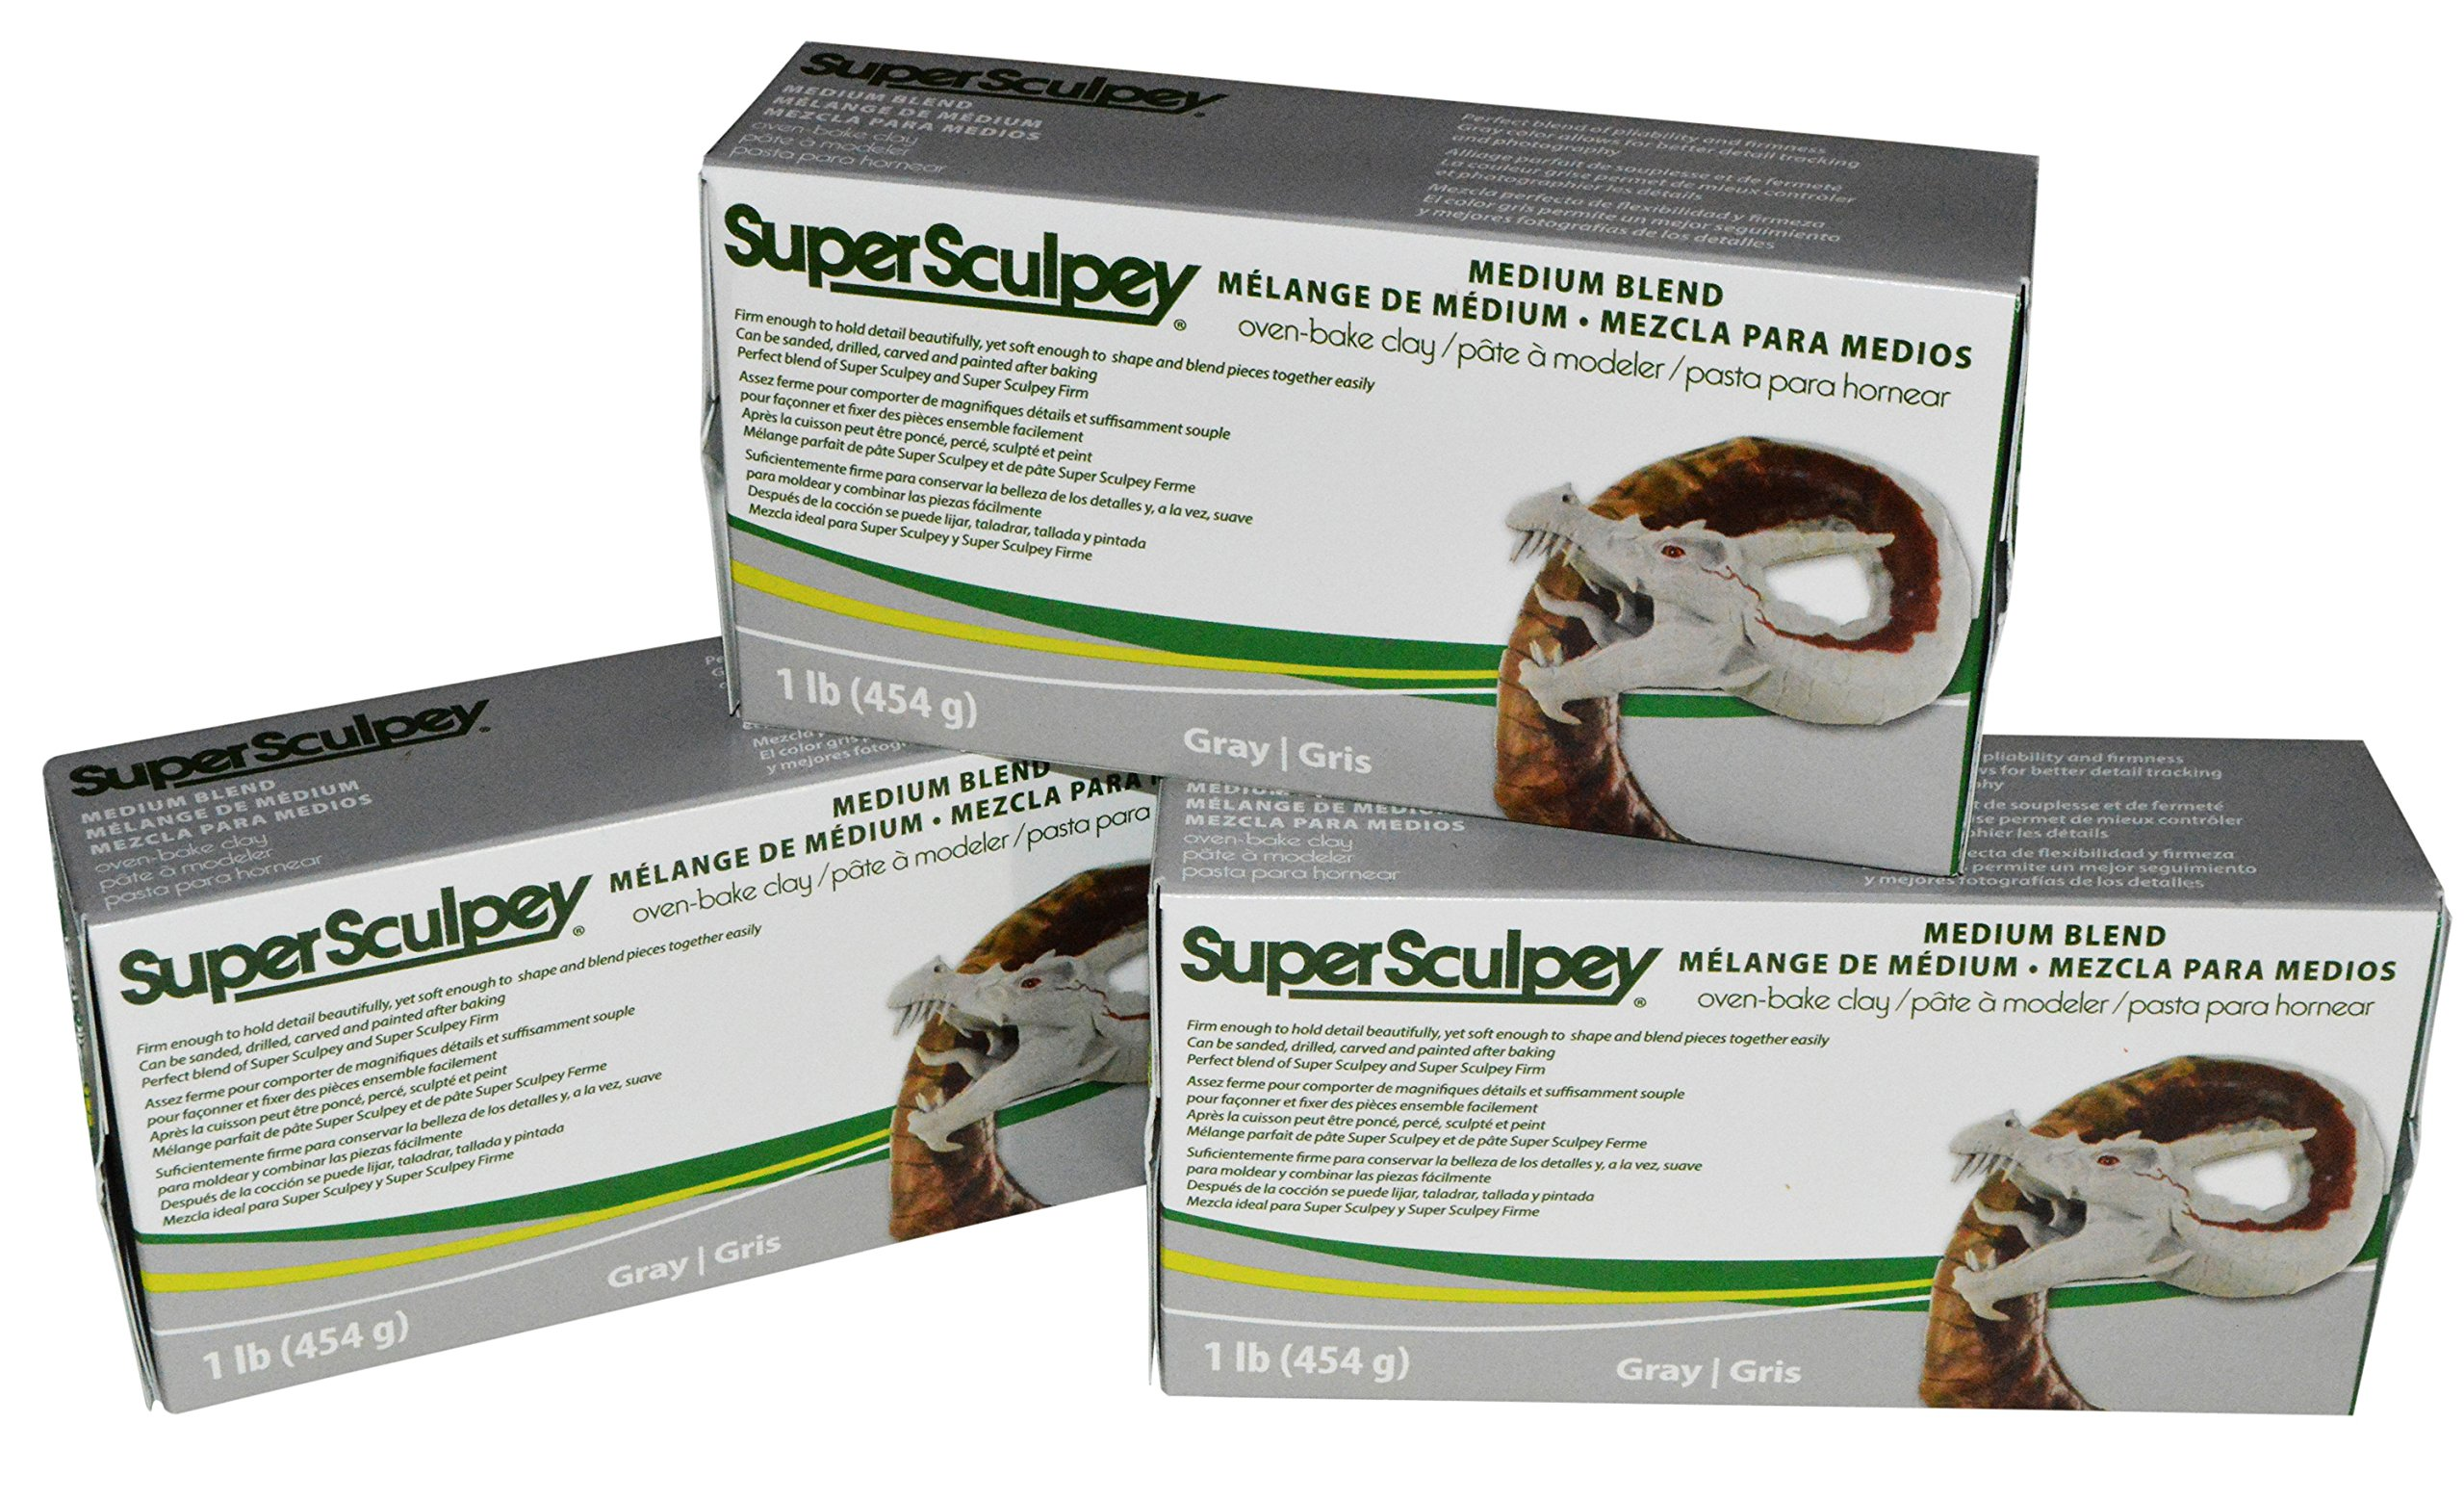 Super Sculpey Medium Blend Gray Oven-Bake Clay - Blend of Super Sculpey and Super Sculpey Firm - 1 Lb, Pack of 3